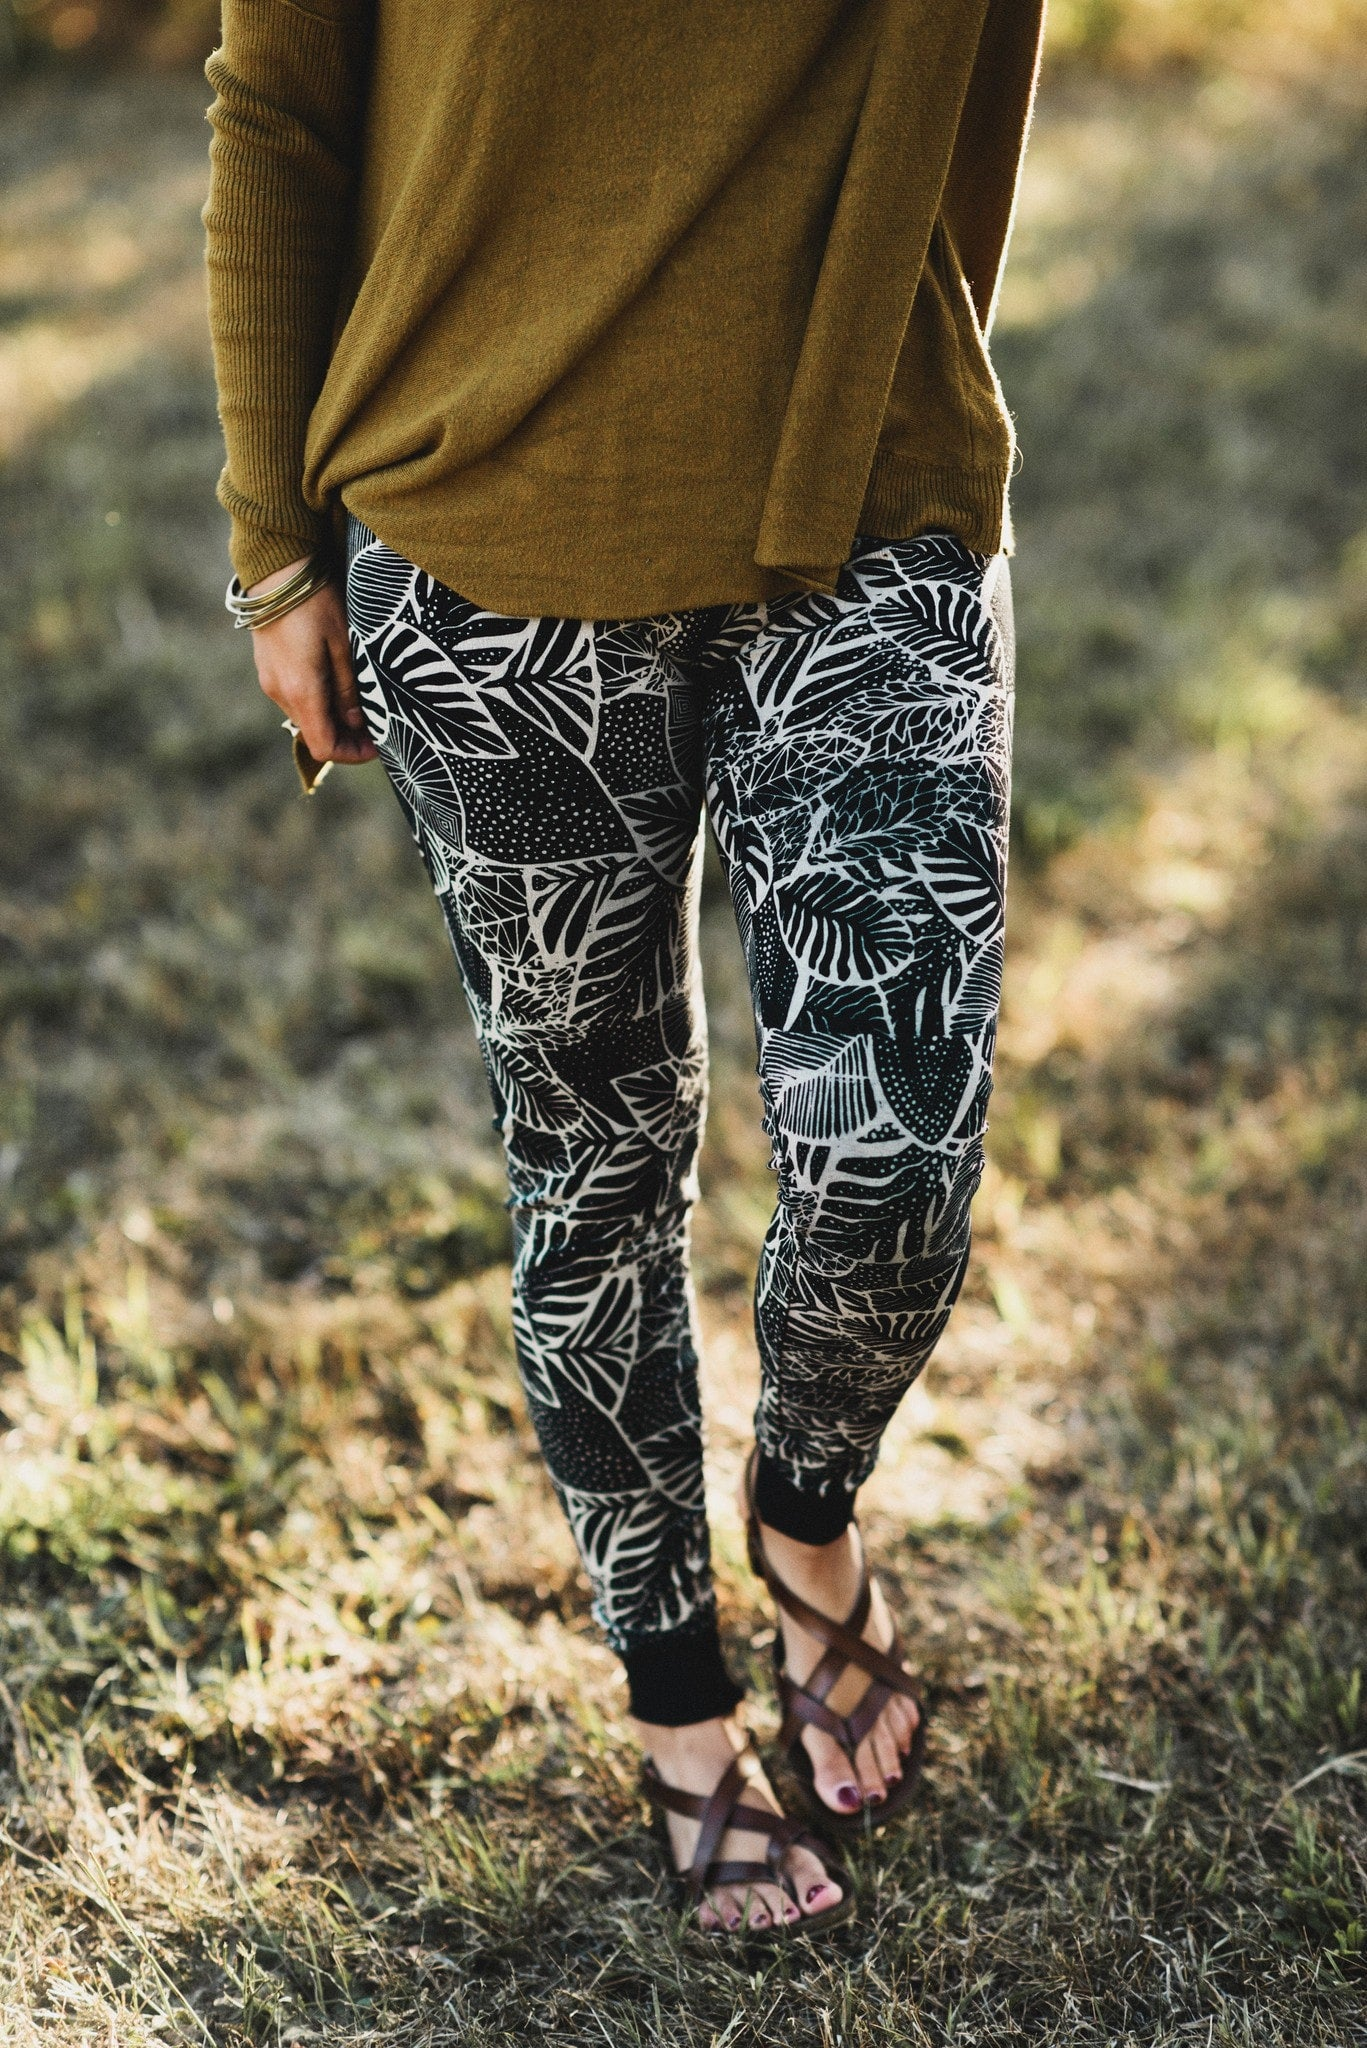 Palm Garden Legging - Black and Cream with hidden pocket